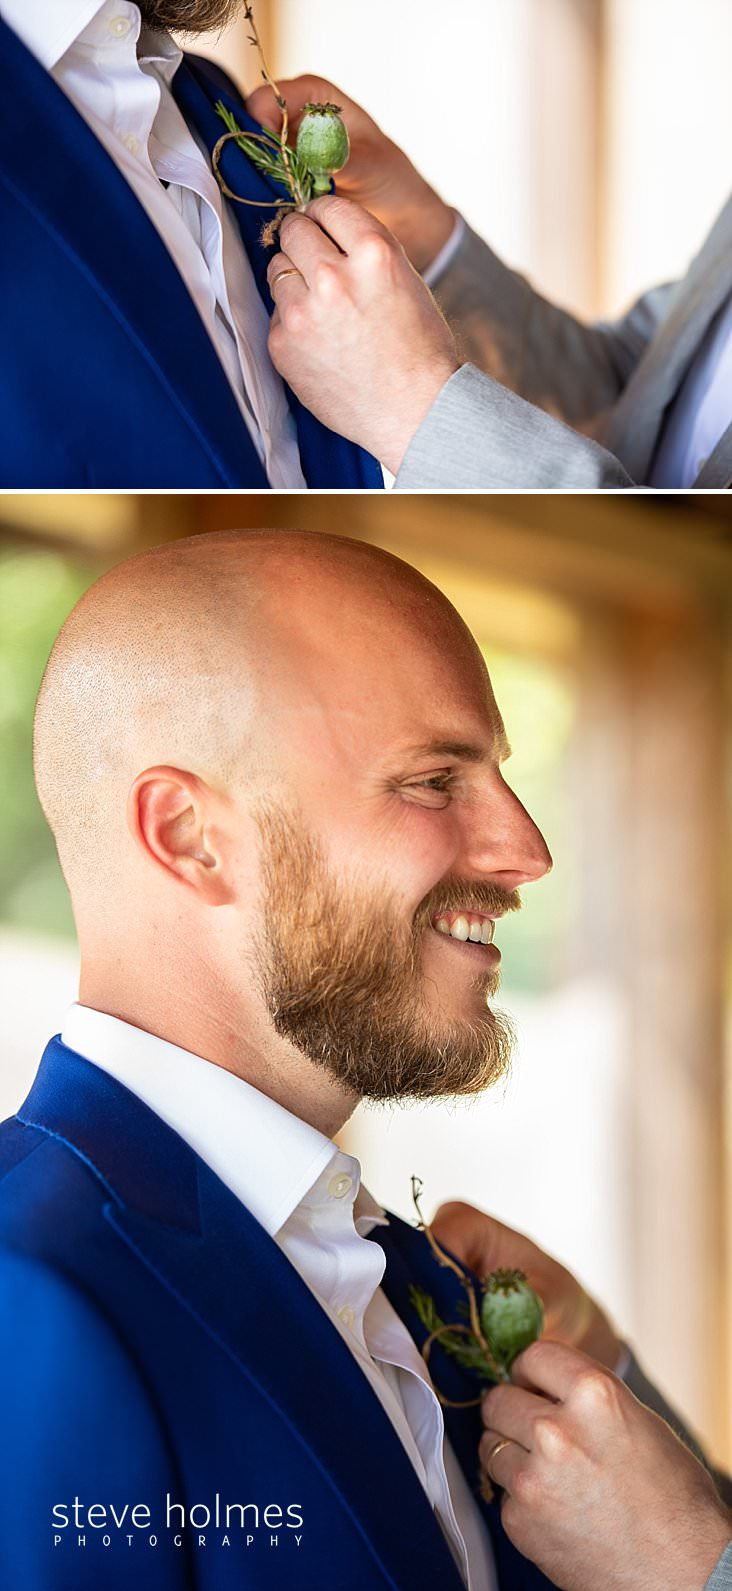 19_Groom gets boutonniere pinned on his suit.jpg